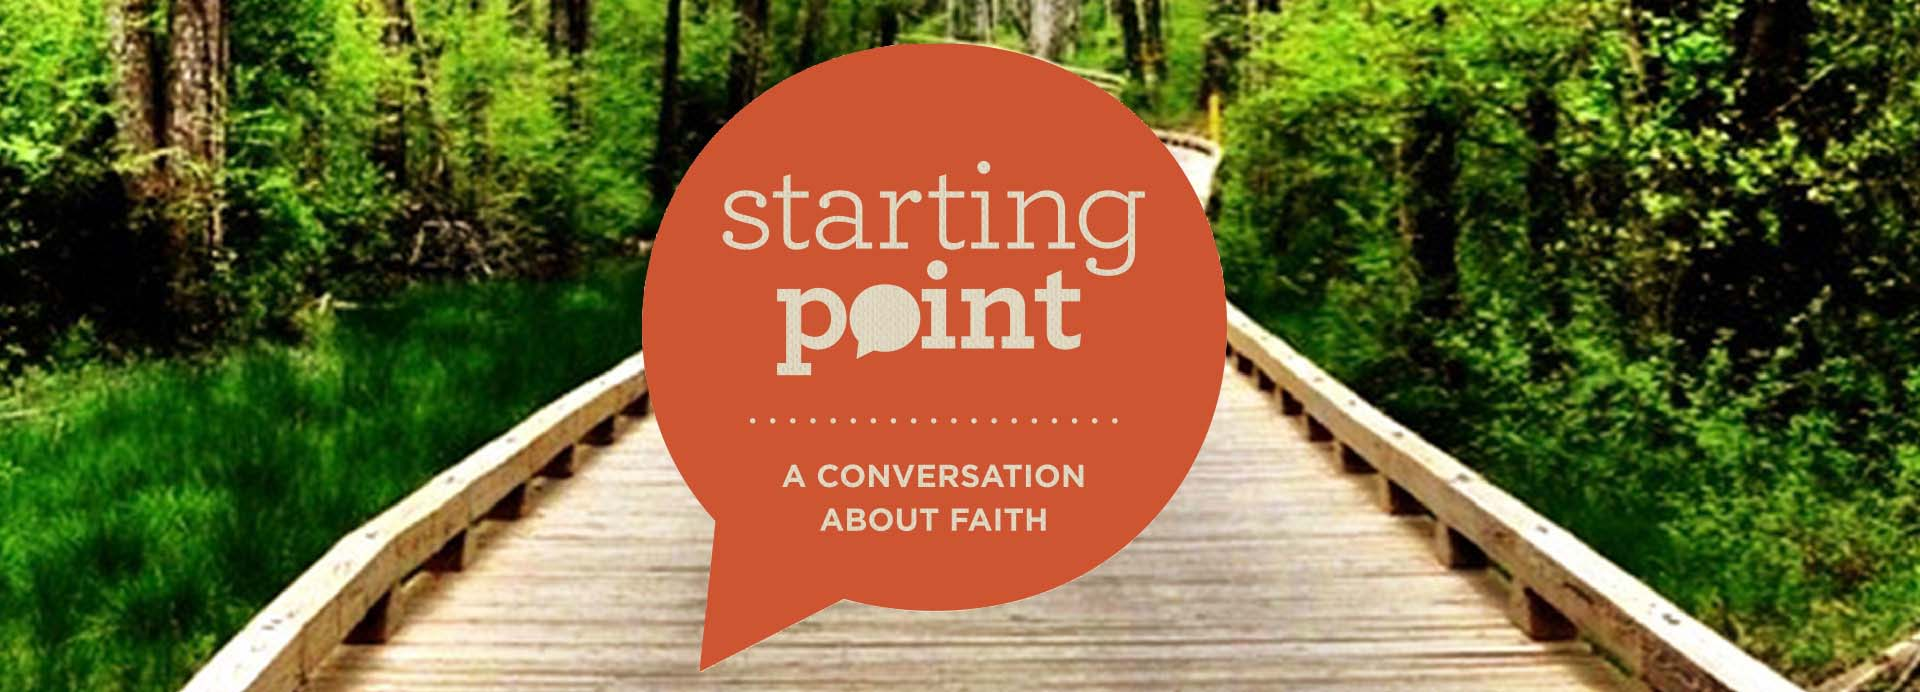 Starting Point - A conversation about faith